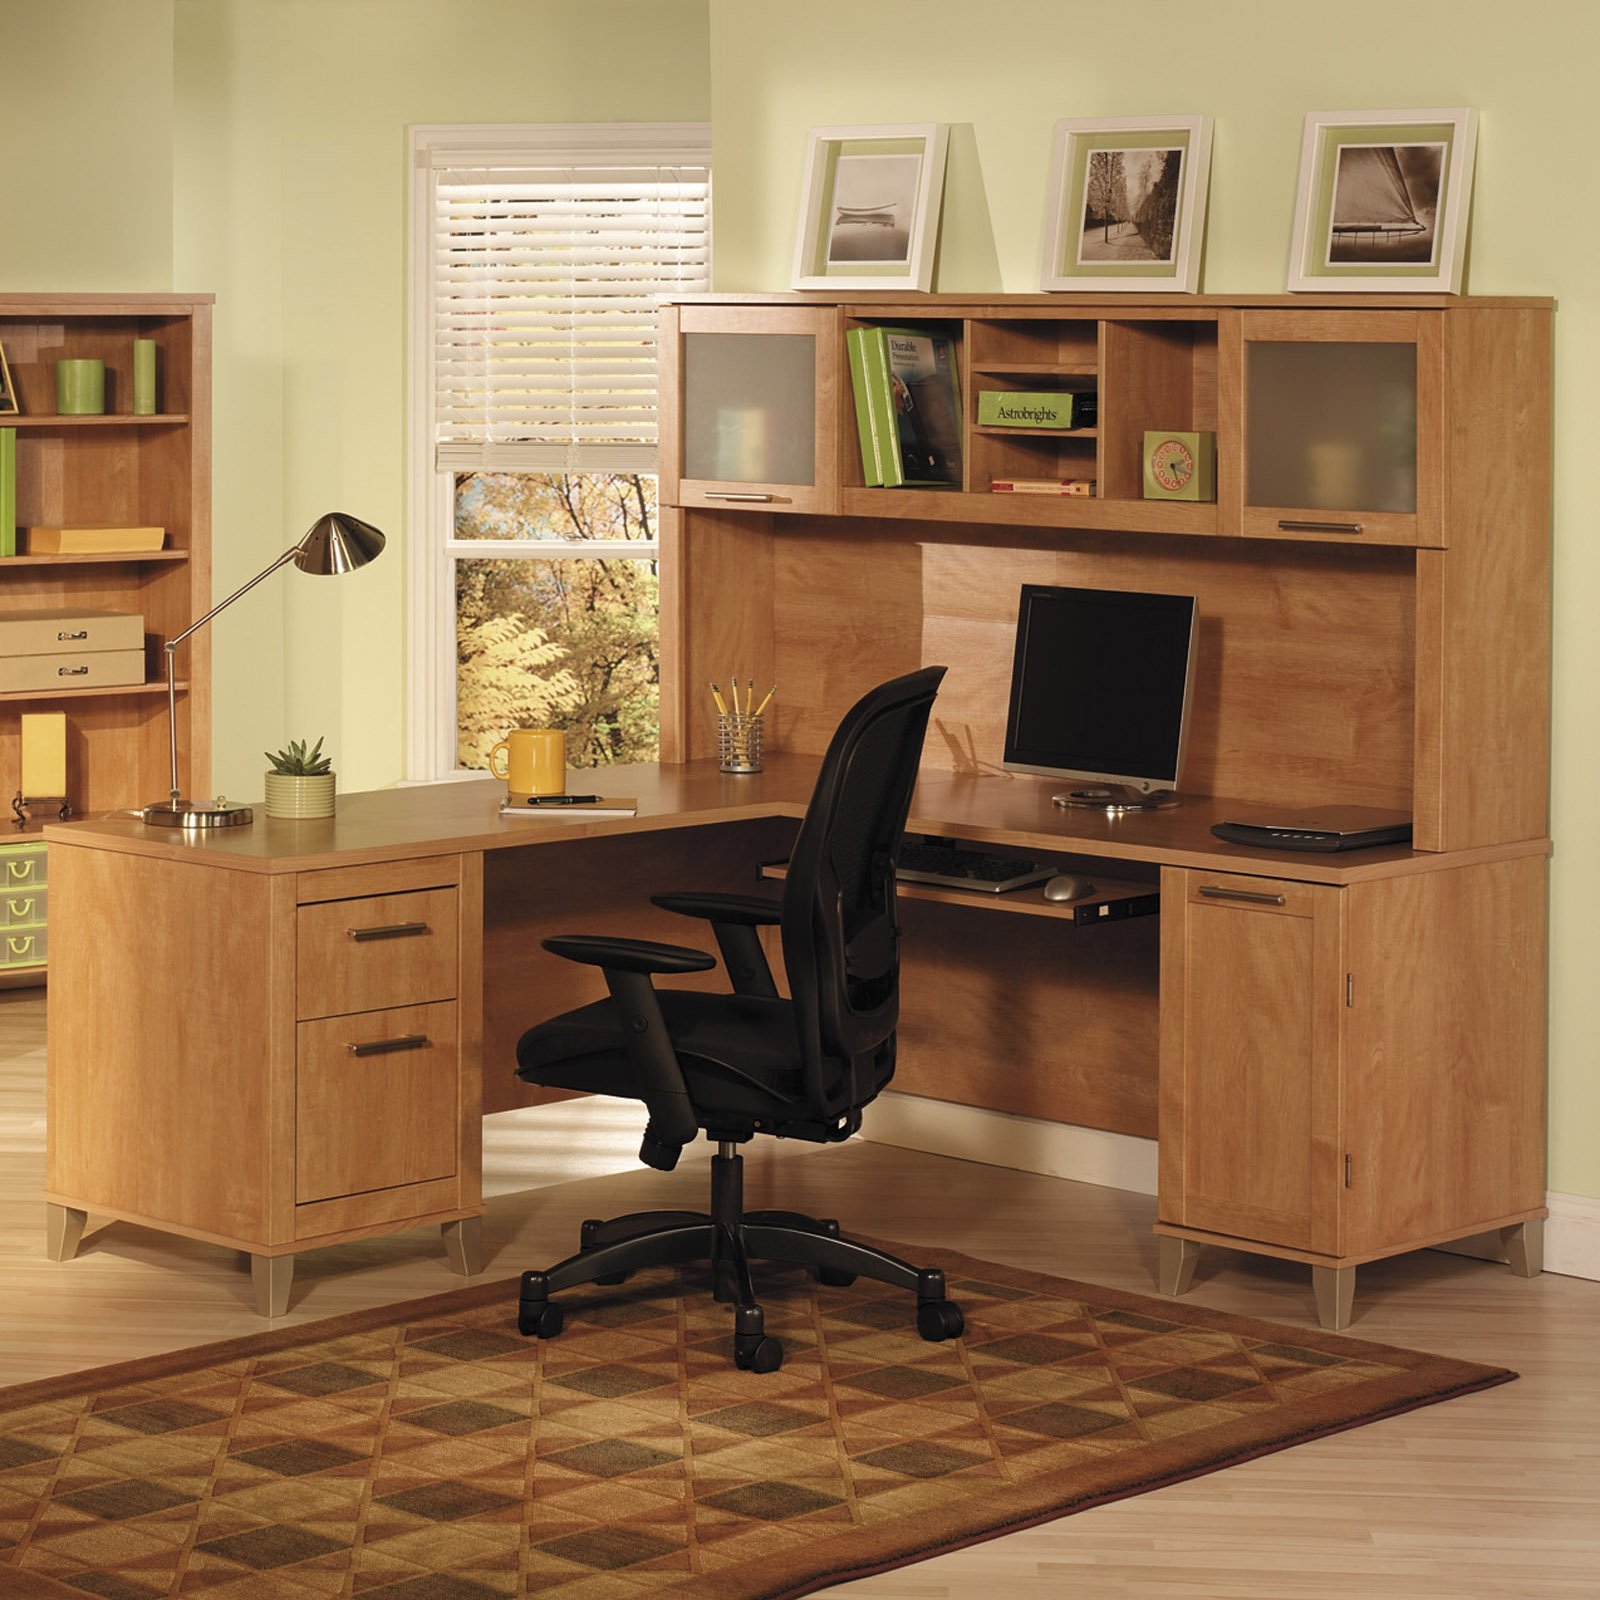 Bush Somerset Estate 71 in. Computer Desk with Options